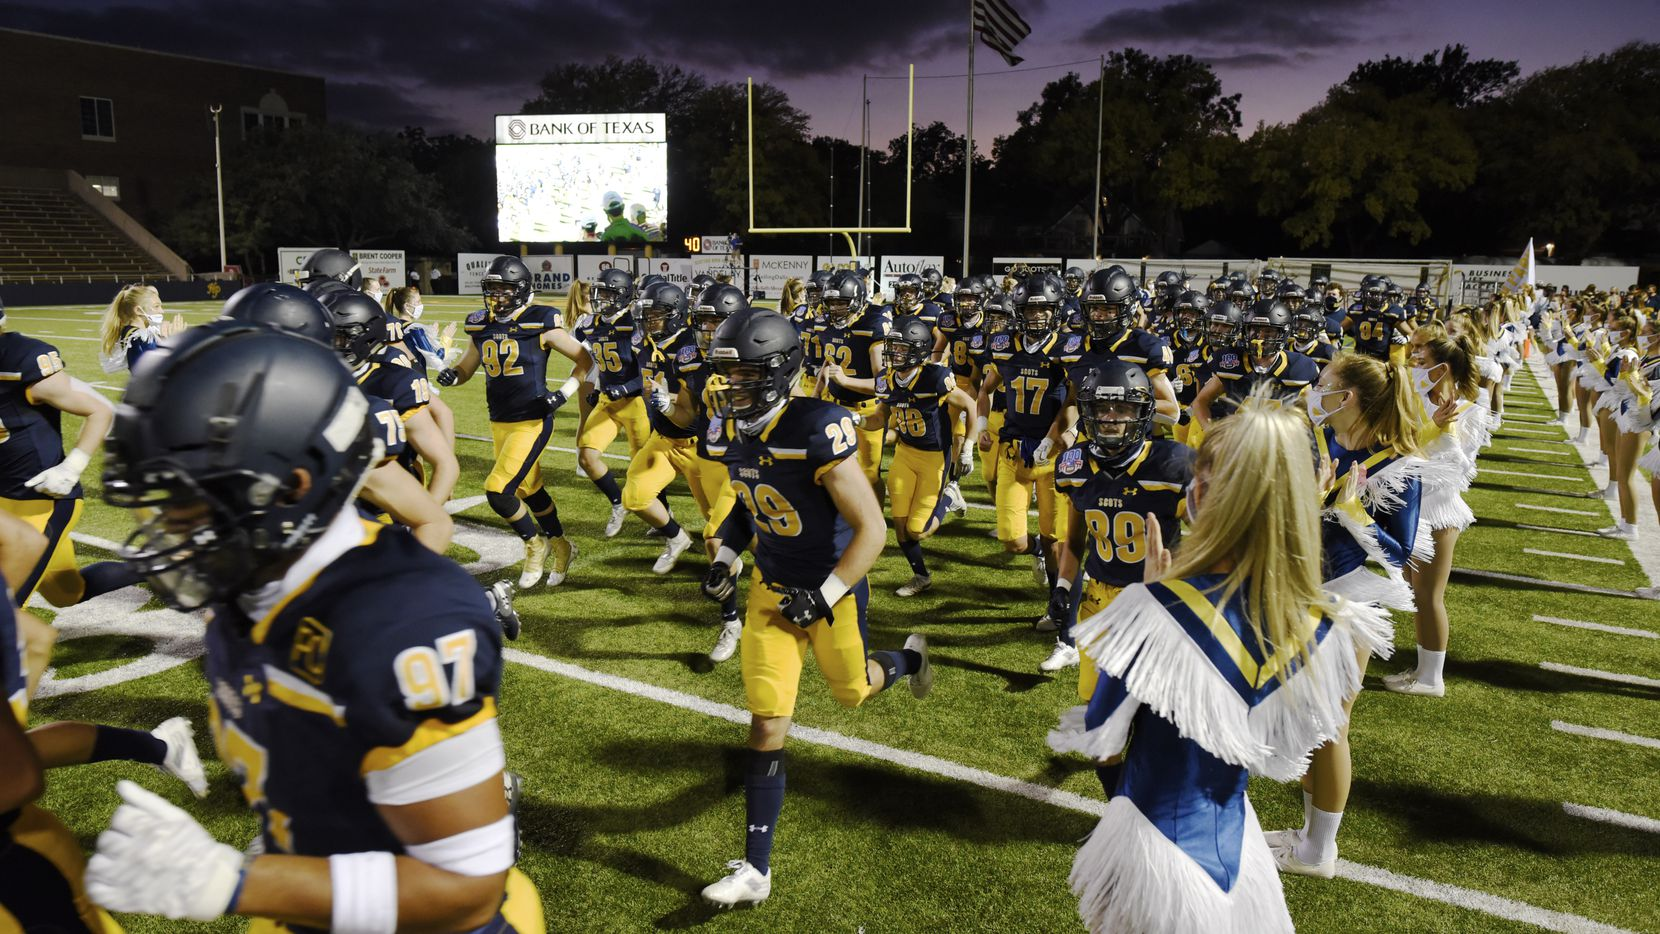 The Highland Park varsity football team runs on to the field for their game versus Coppell High School, on Friday night, Oct. 09, 2020 at Highland Park High School in Dallas.